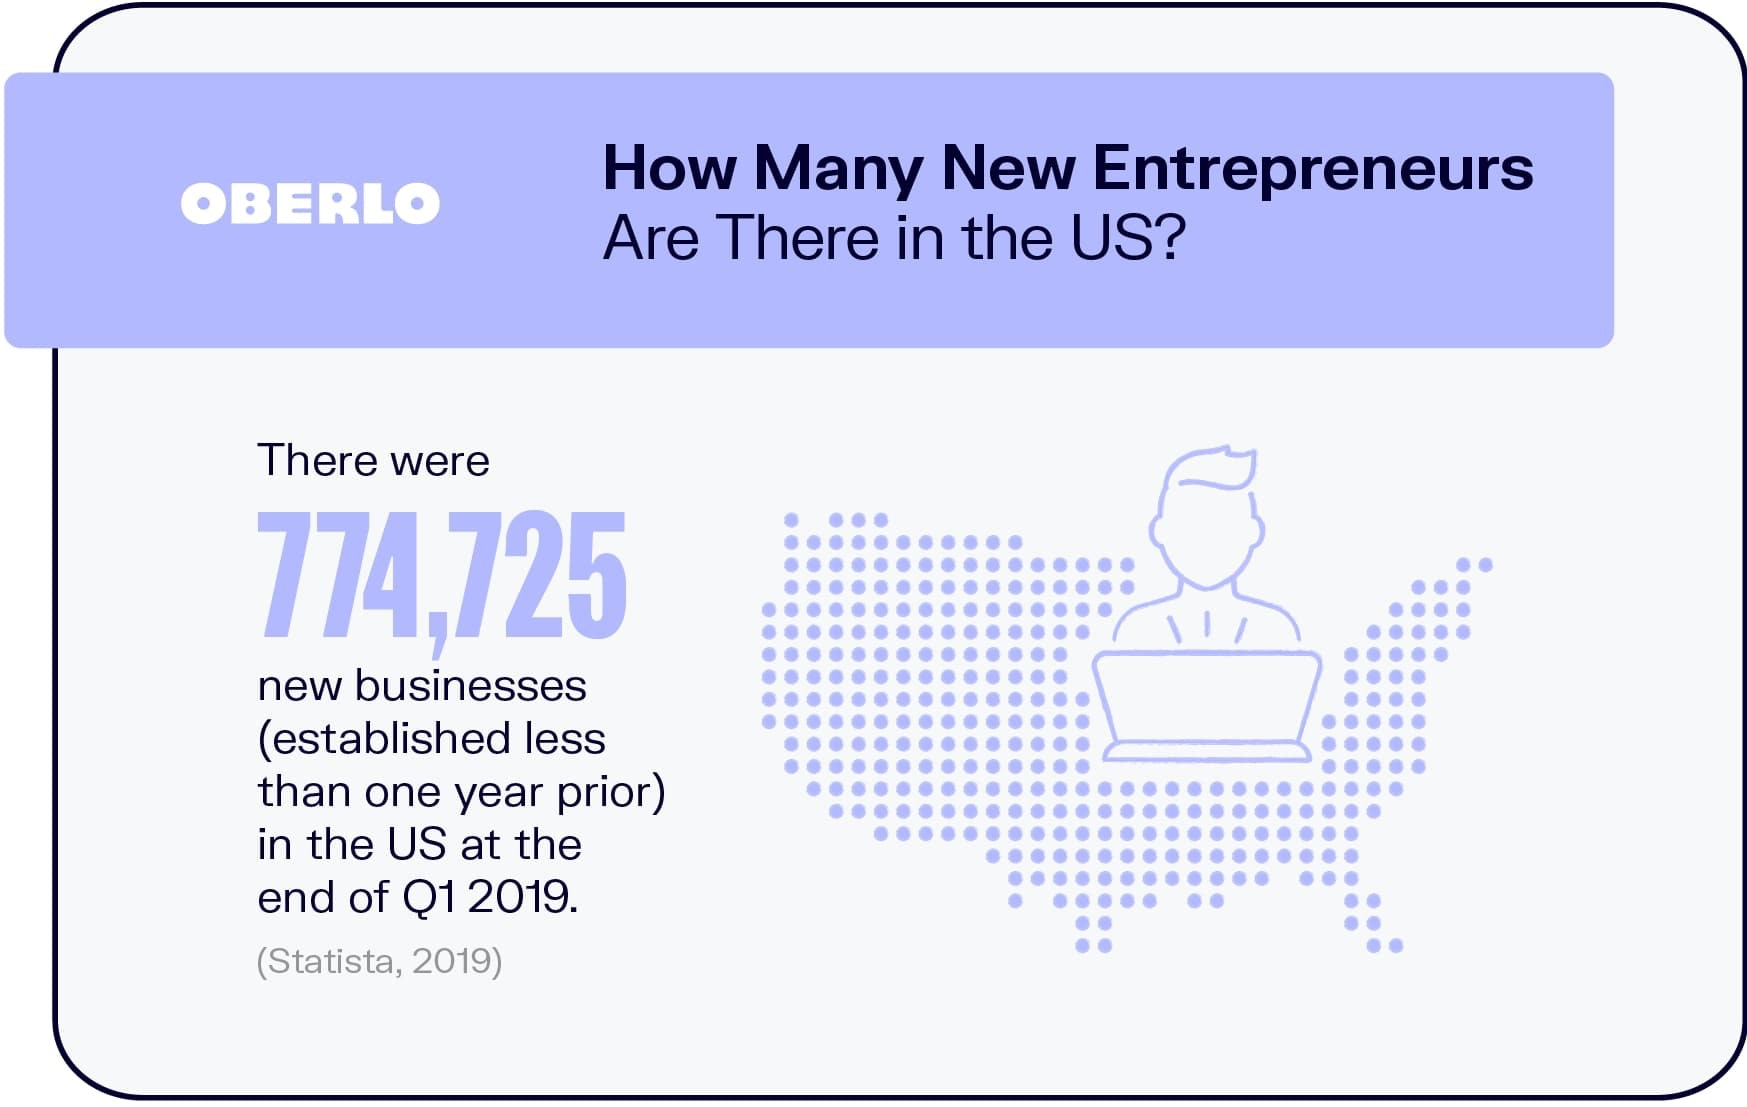 How Many New Entrepreneurs Are There in the US?